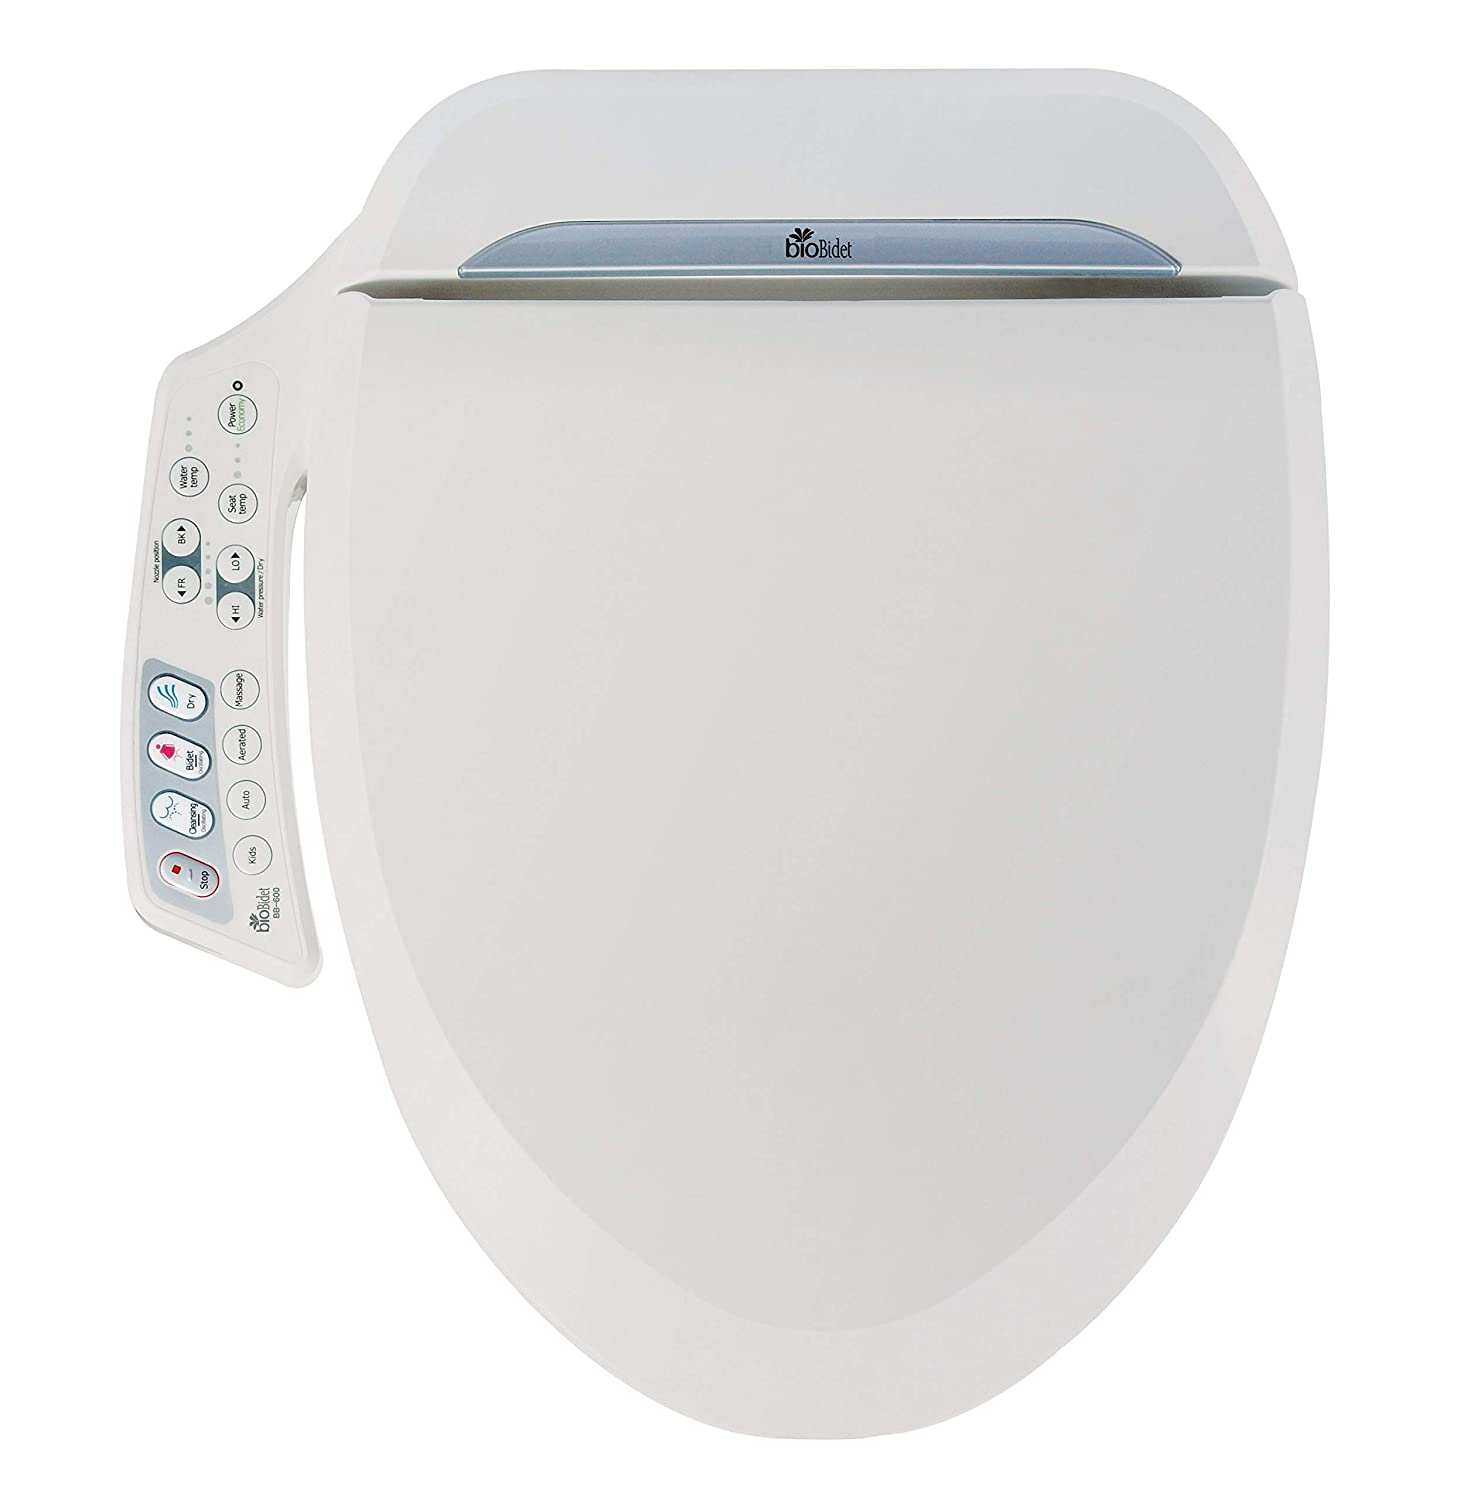 Bio Bidet Ultimate Bb 600 Advanced Bidet Toilet Seat Elongated